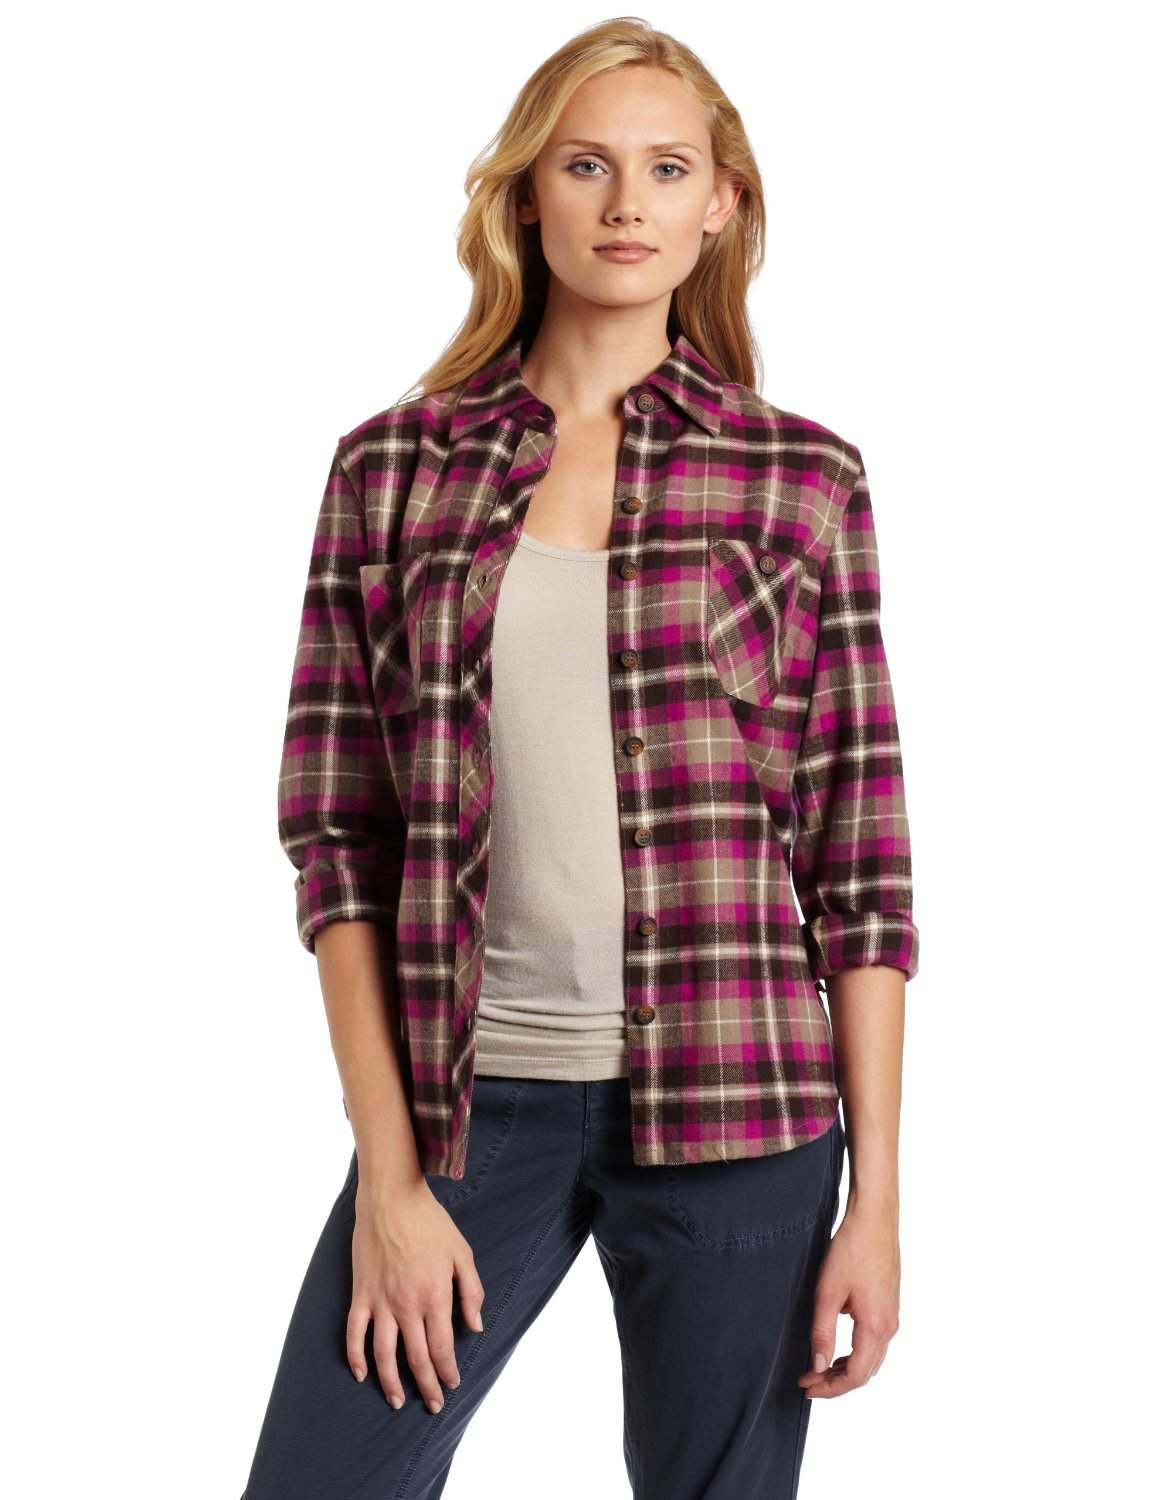 Womens Flannel Shirts: Plaid Flannel Shirts For Women